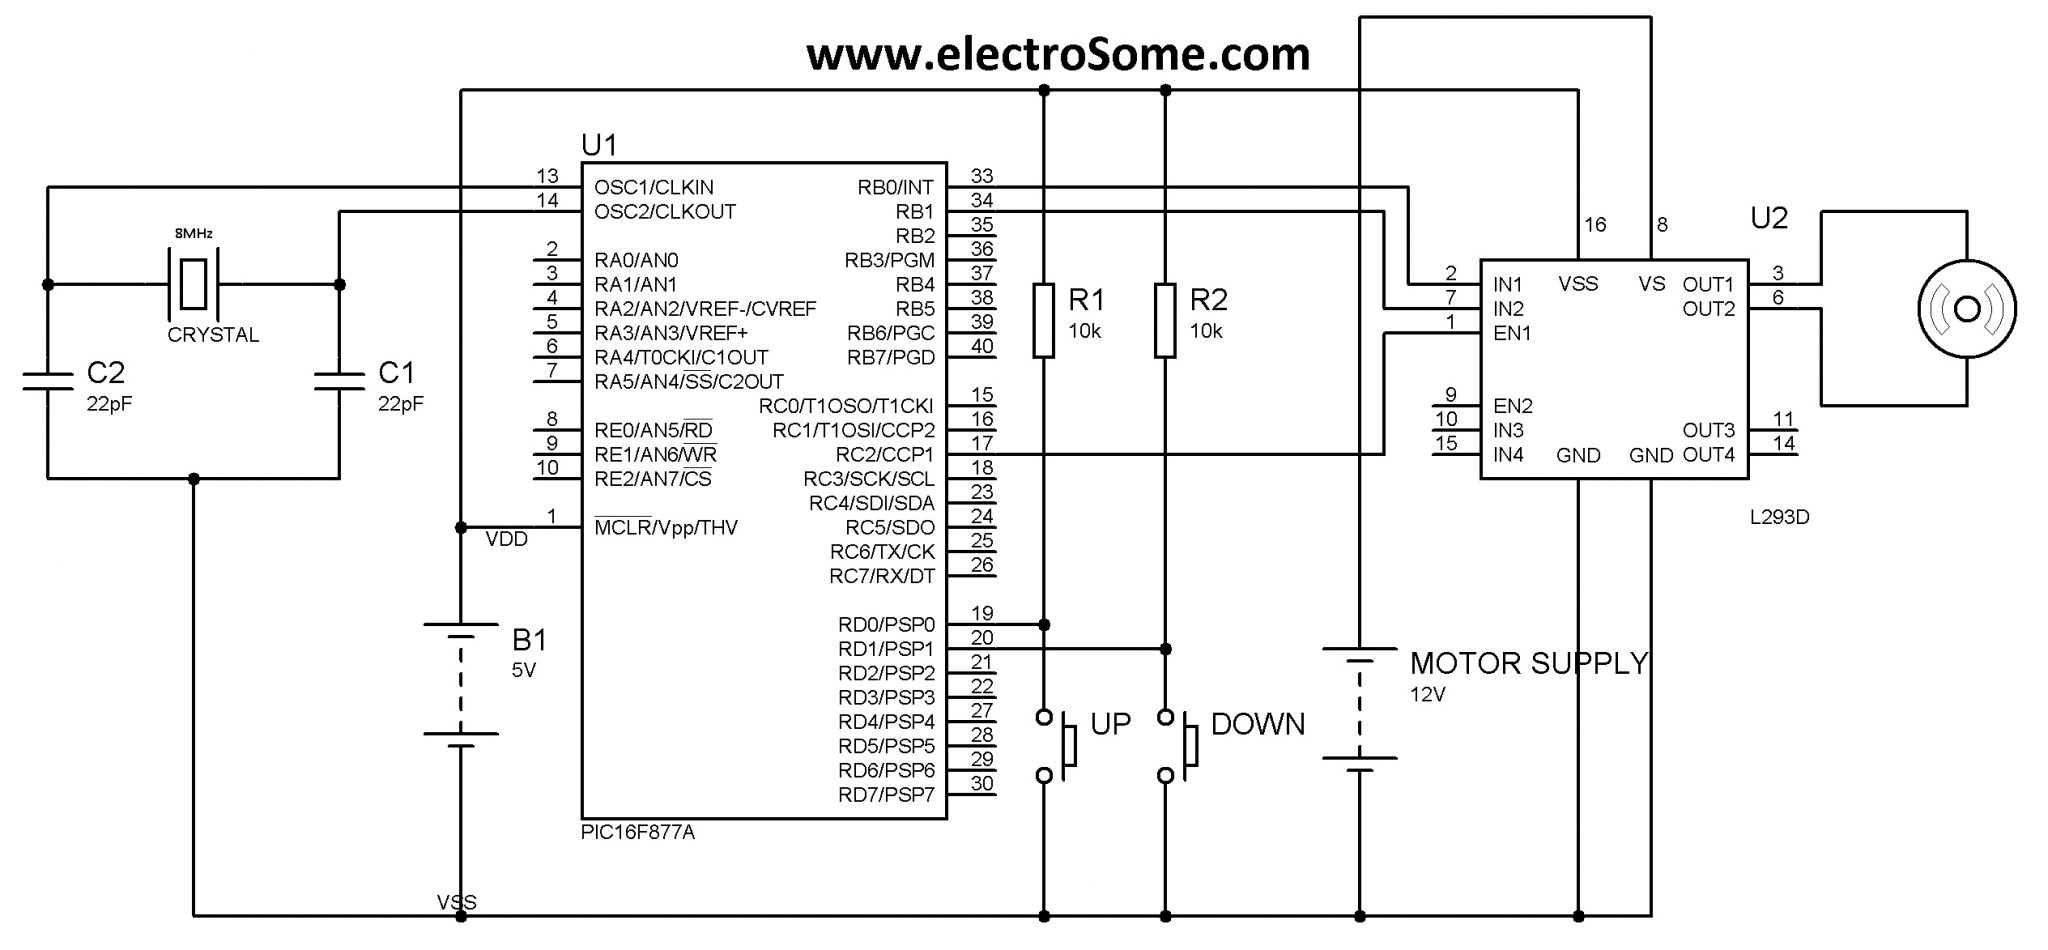 Dc Motor Speed Control Using Pwm With Pic Microcontroller Mikroc Circuit Diagram Together Load Cell